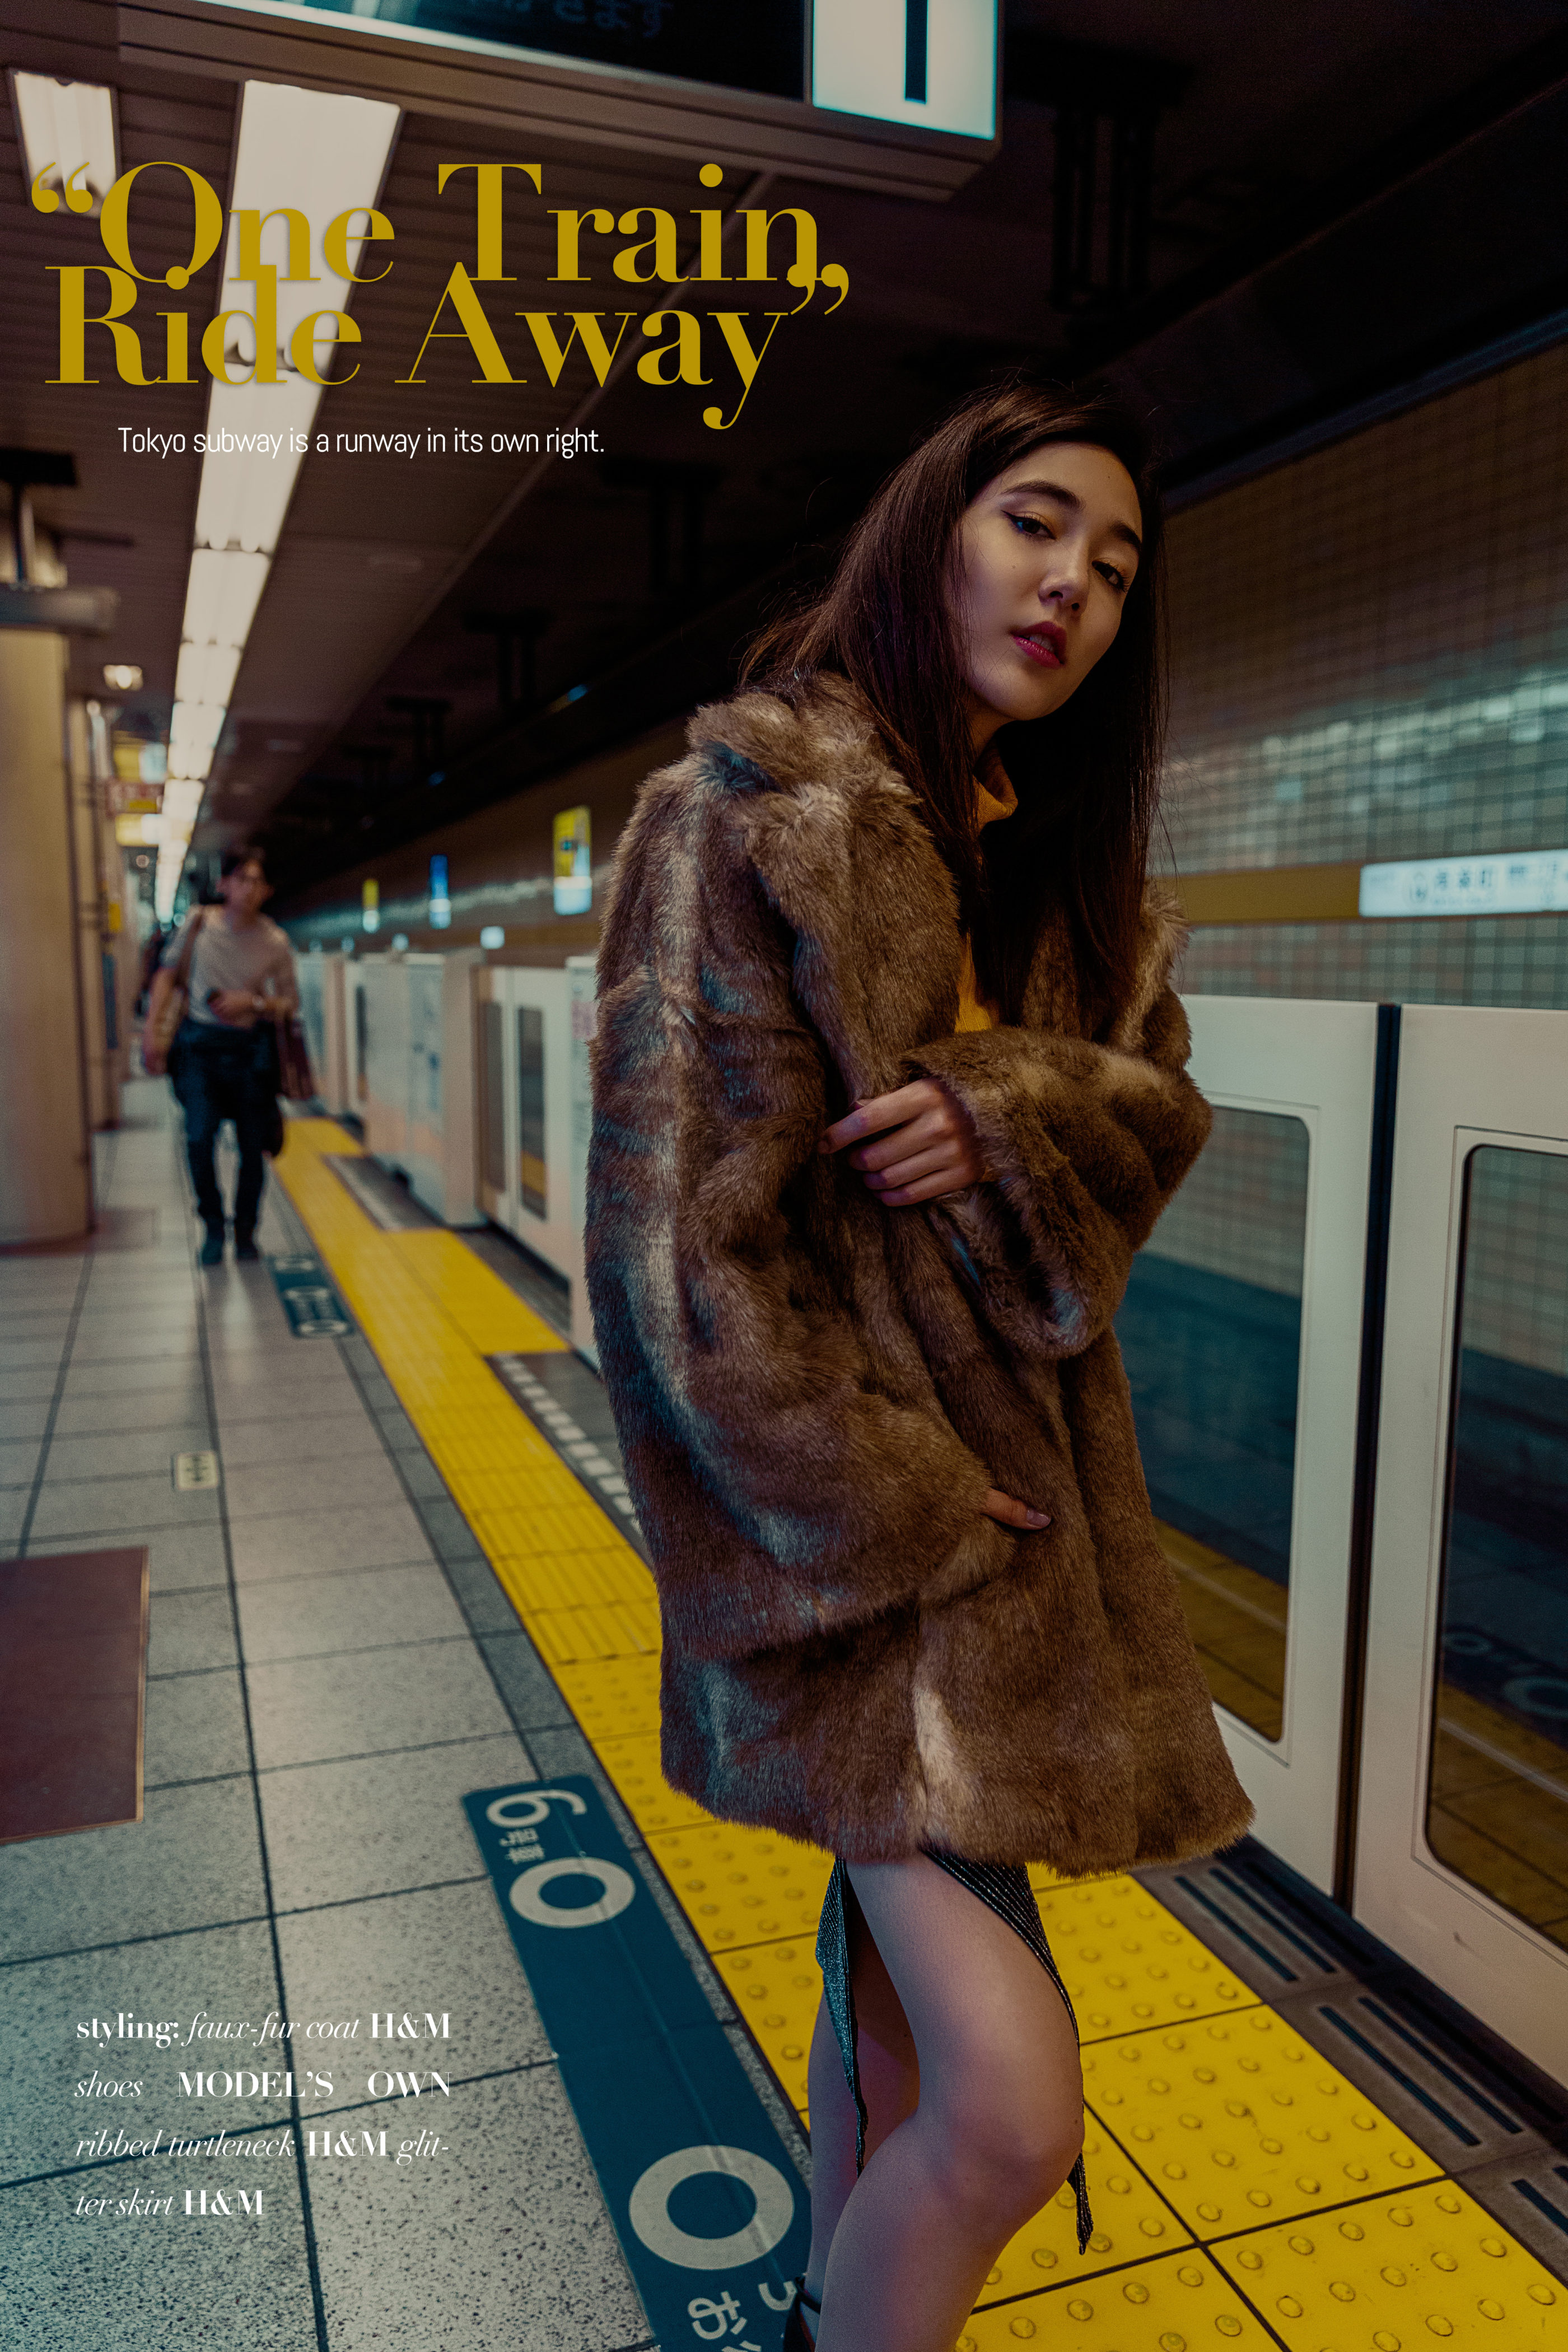 Fashion editorial on Tokyo subway by ivana micic